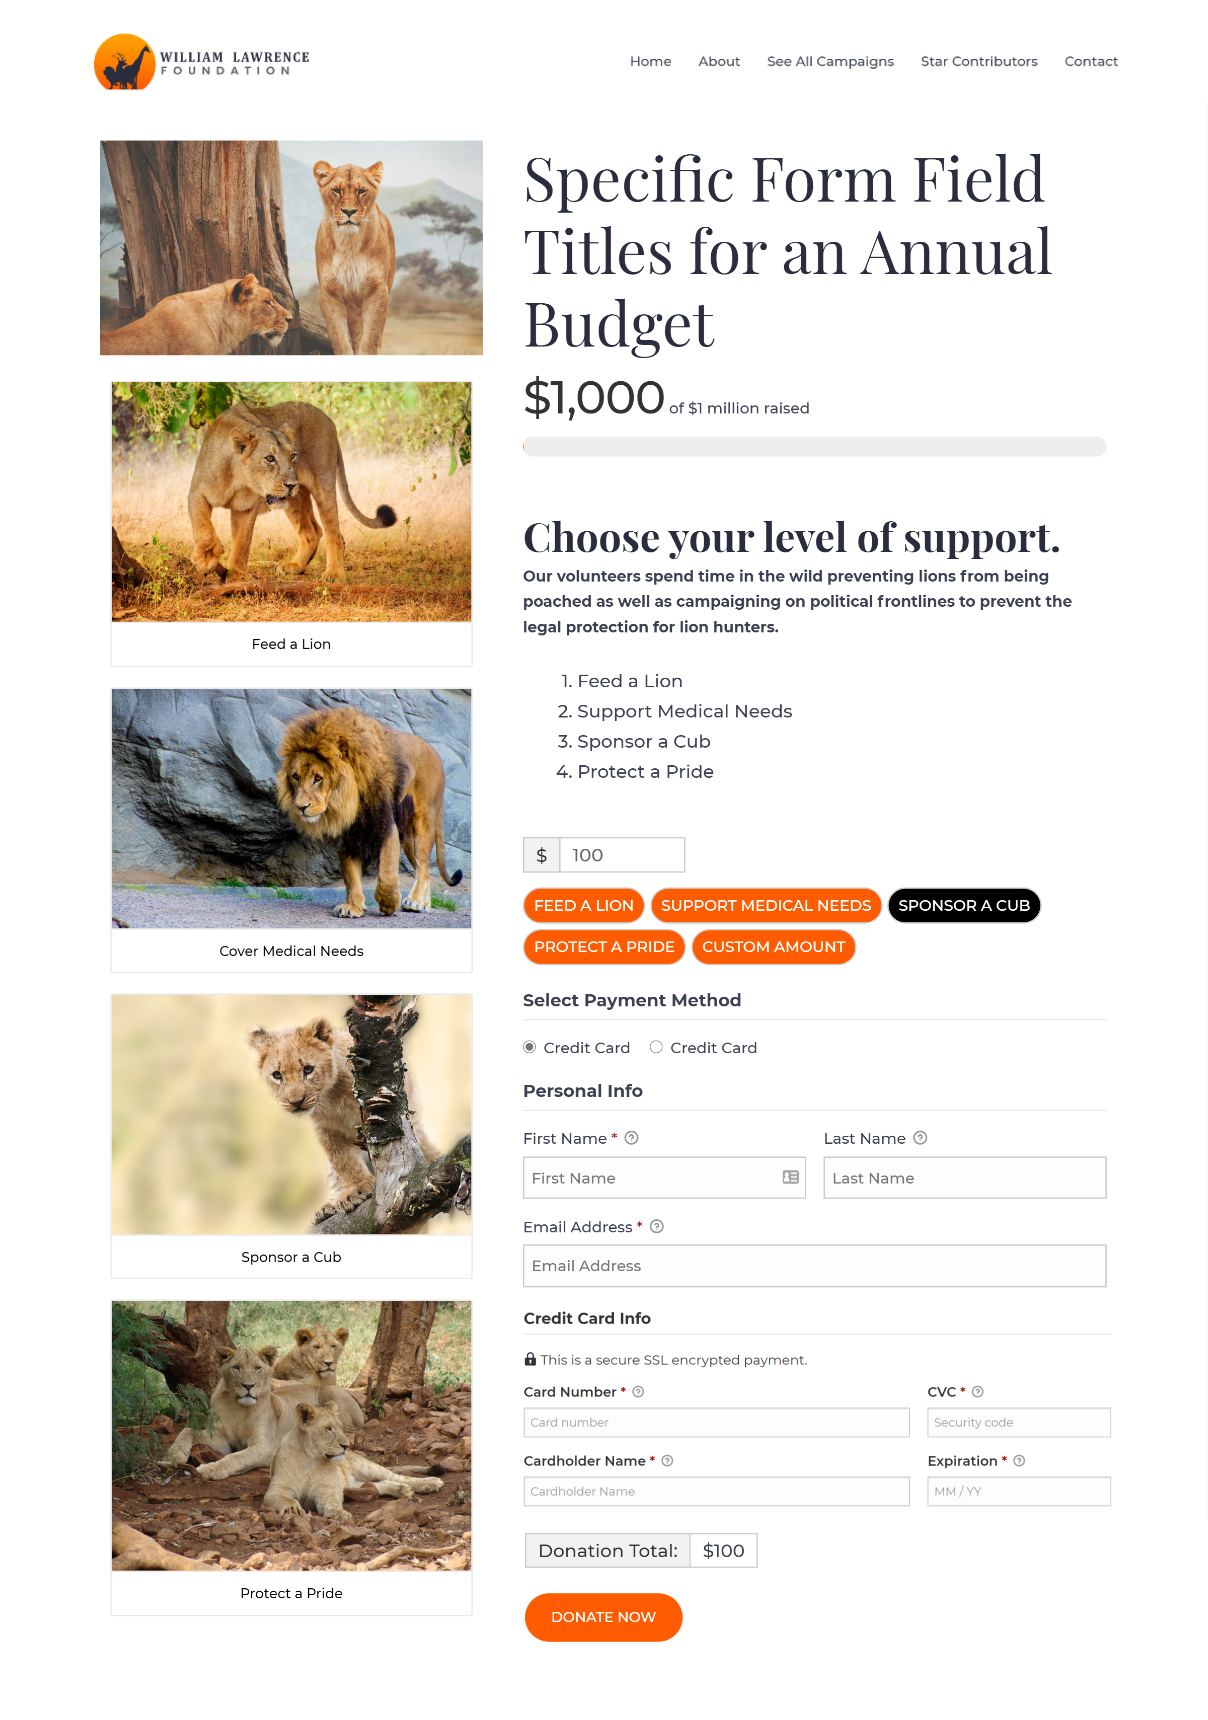 GiveWP campaign with images in the sidebar, showing having raised $1000 of 1 Million as a goal